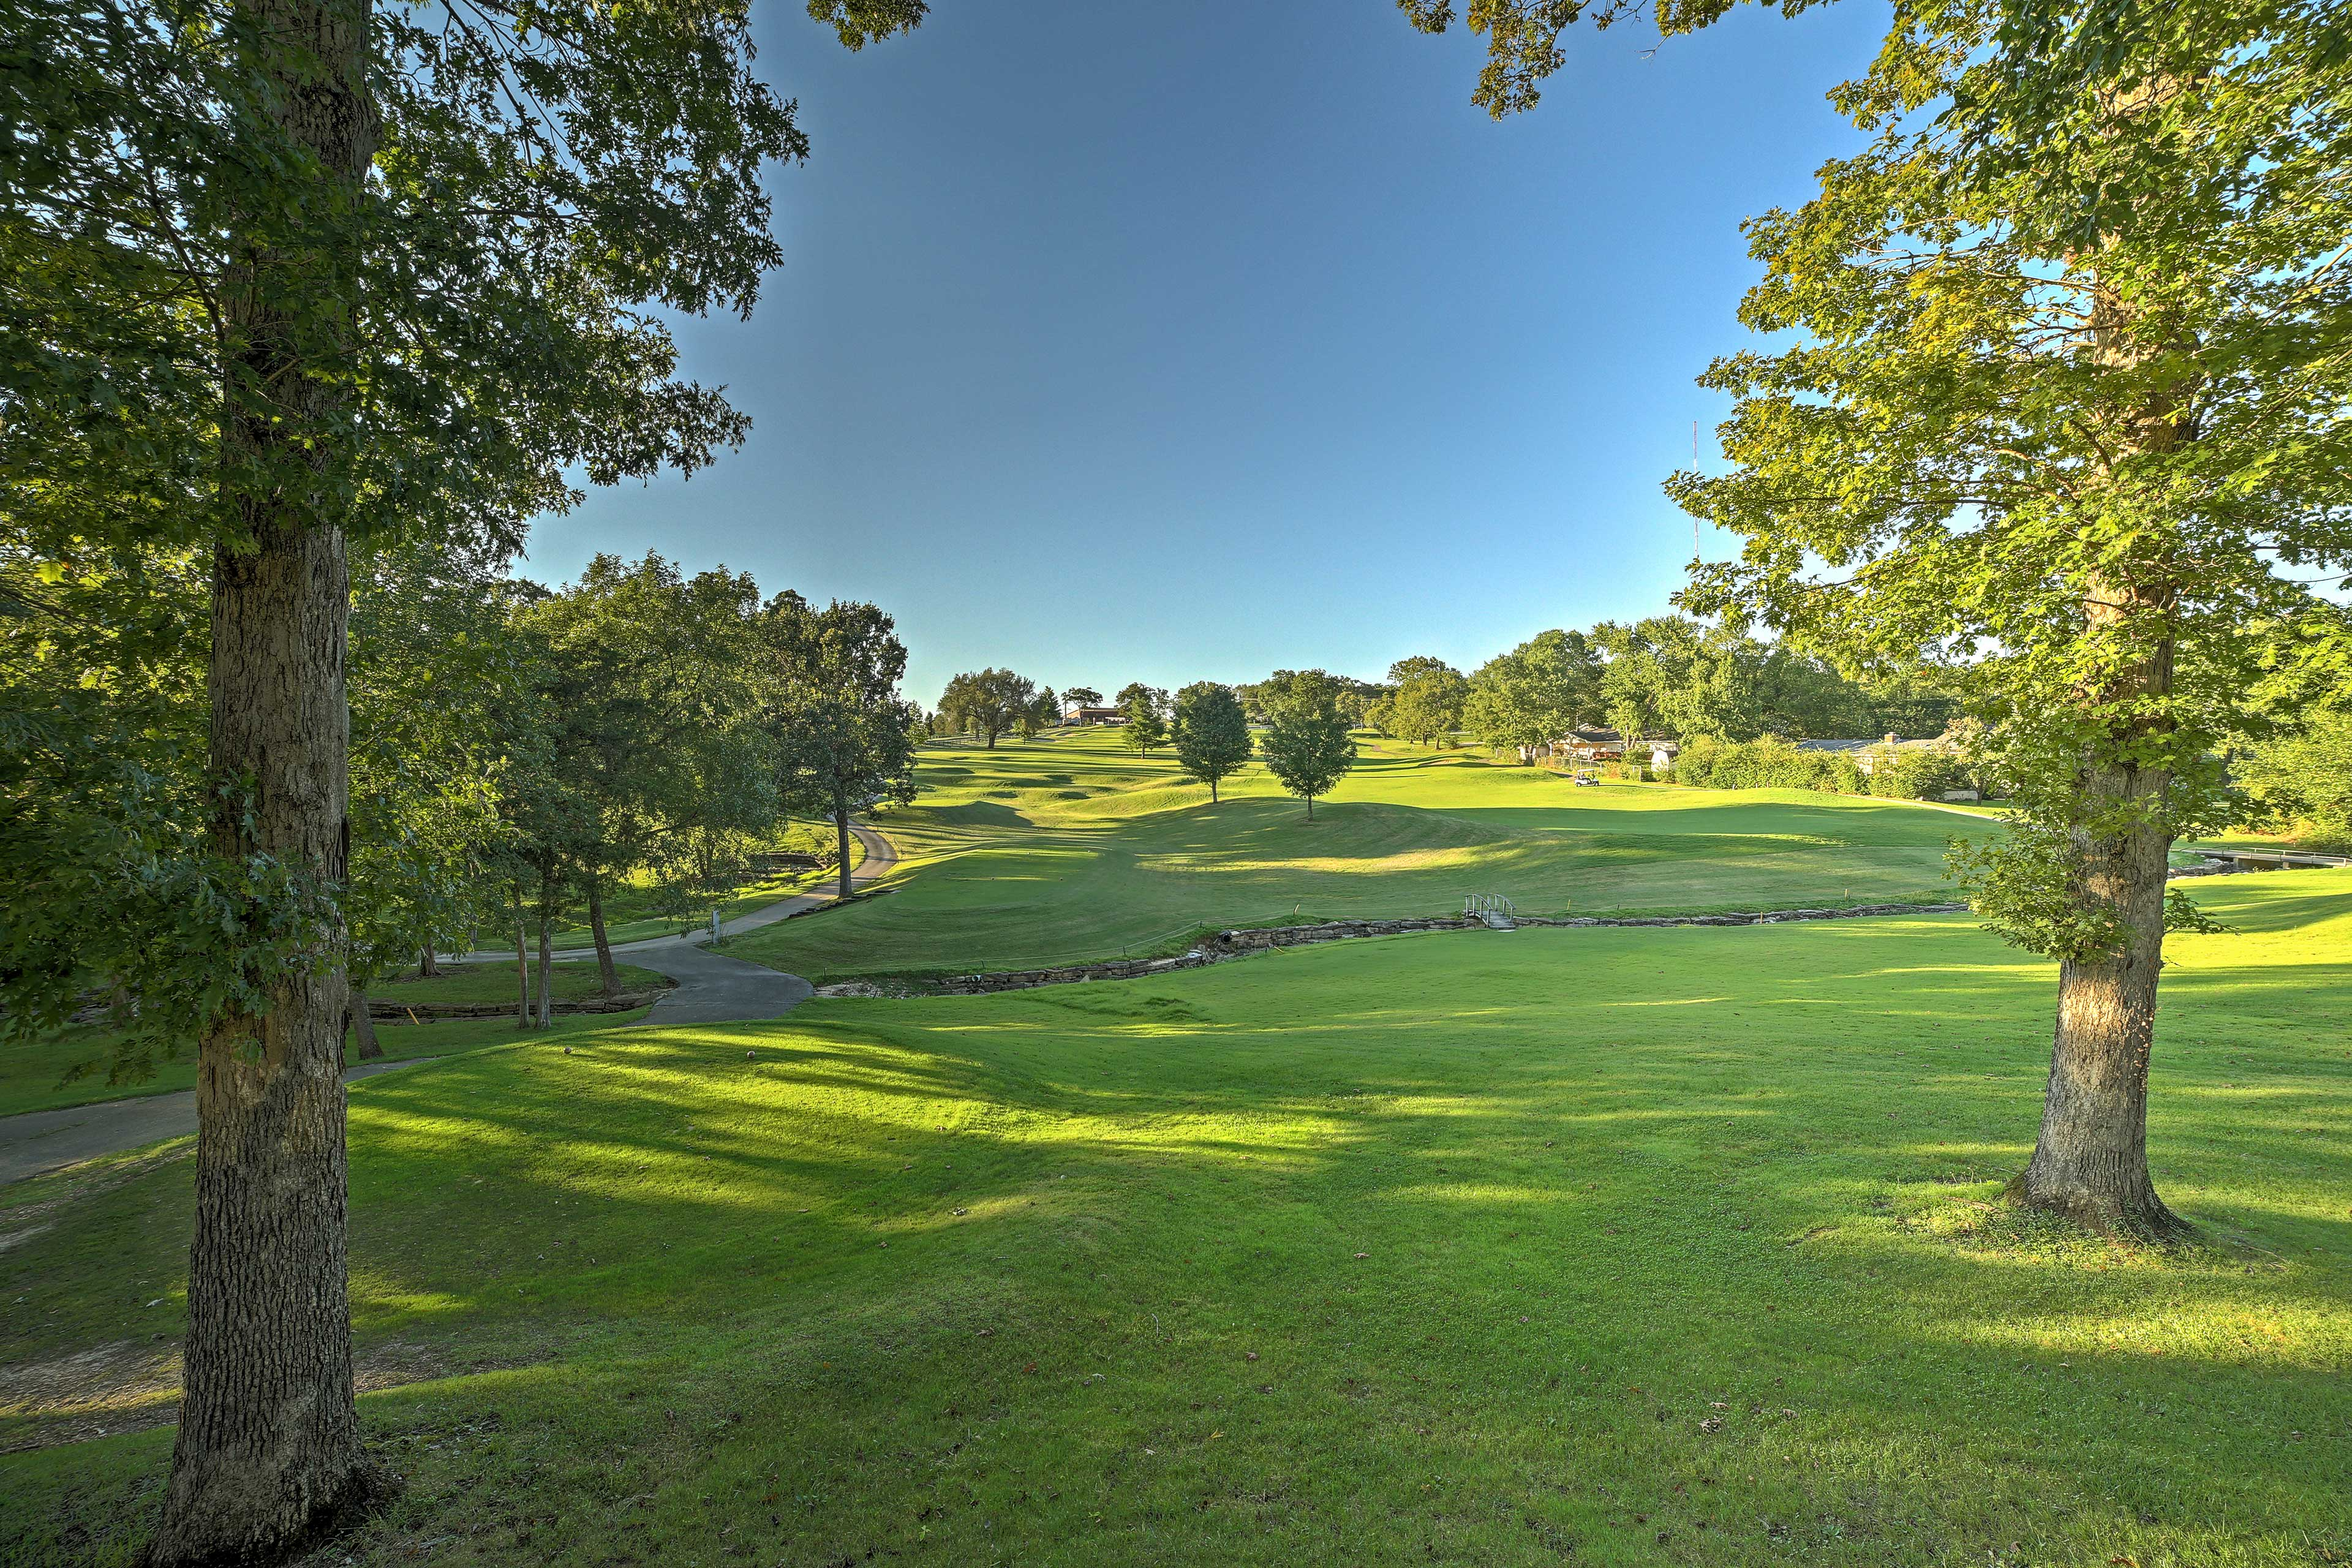 If golf is your game, be sure to take advantage of the 18-hole course.